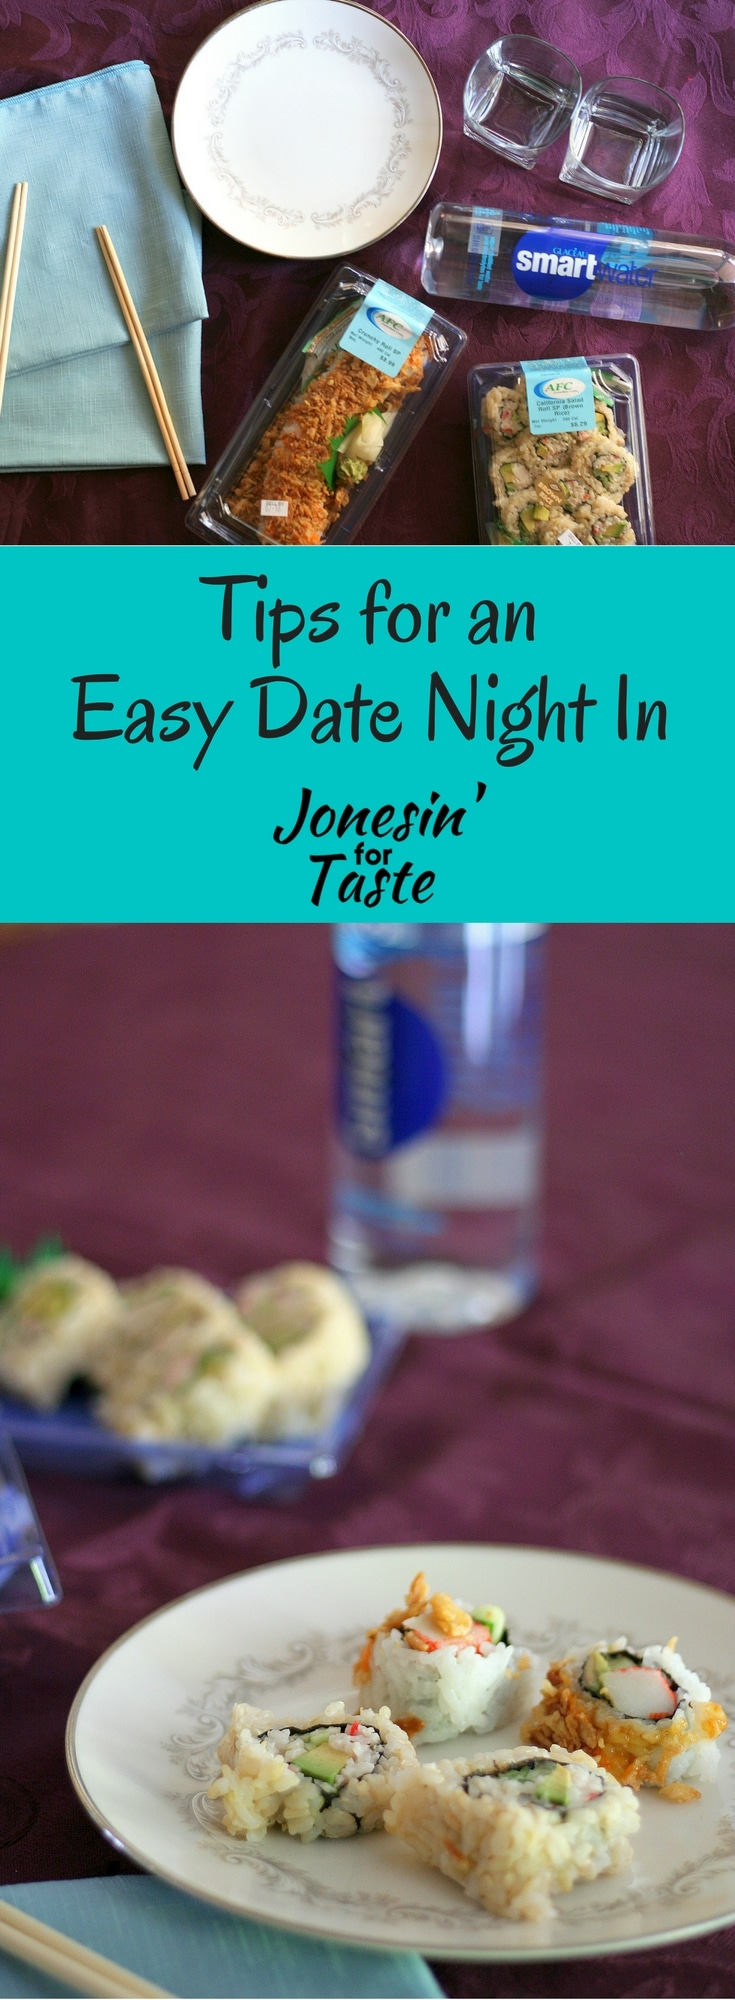 #ad Some ideas on how to dress up the dinner table and add store bought sushi and bottled water for an easy date night in. #ServeWithACoke #Kroger #CollectiveBias